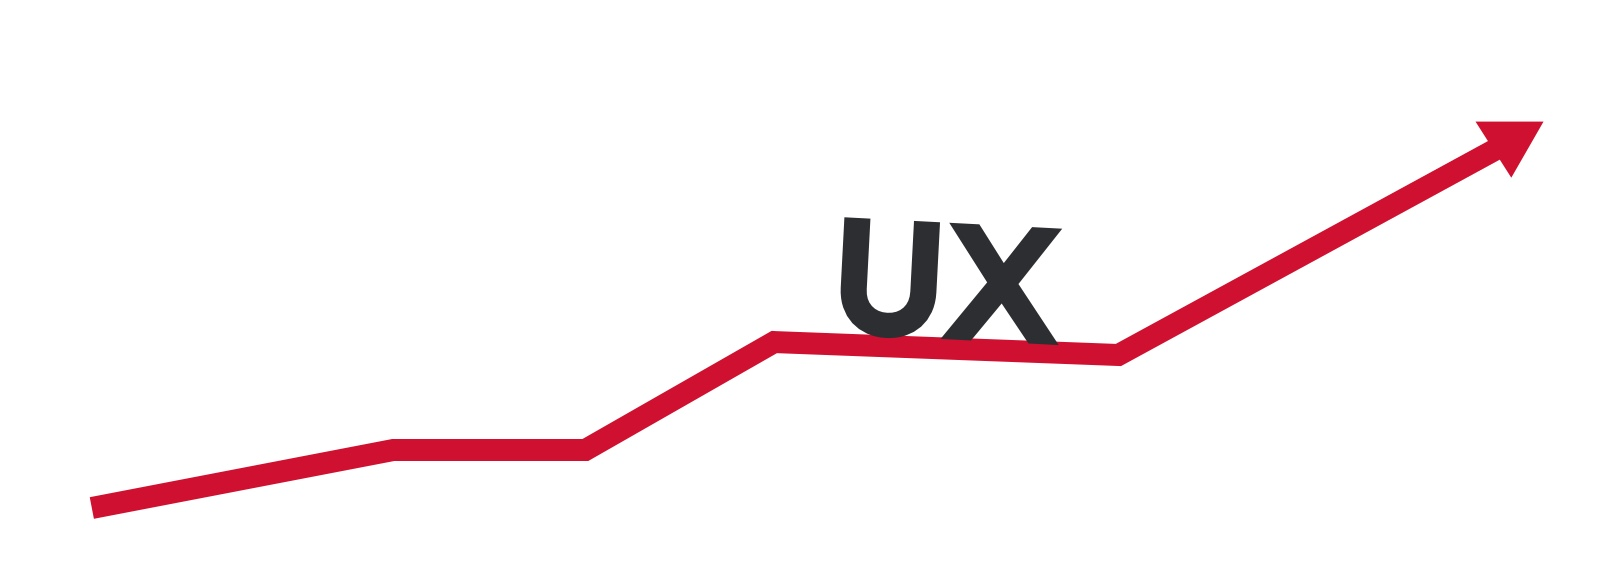 UX led to success of digital products and growth